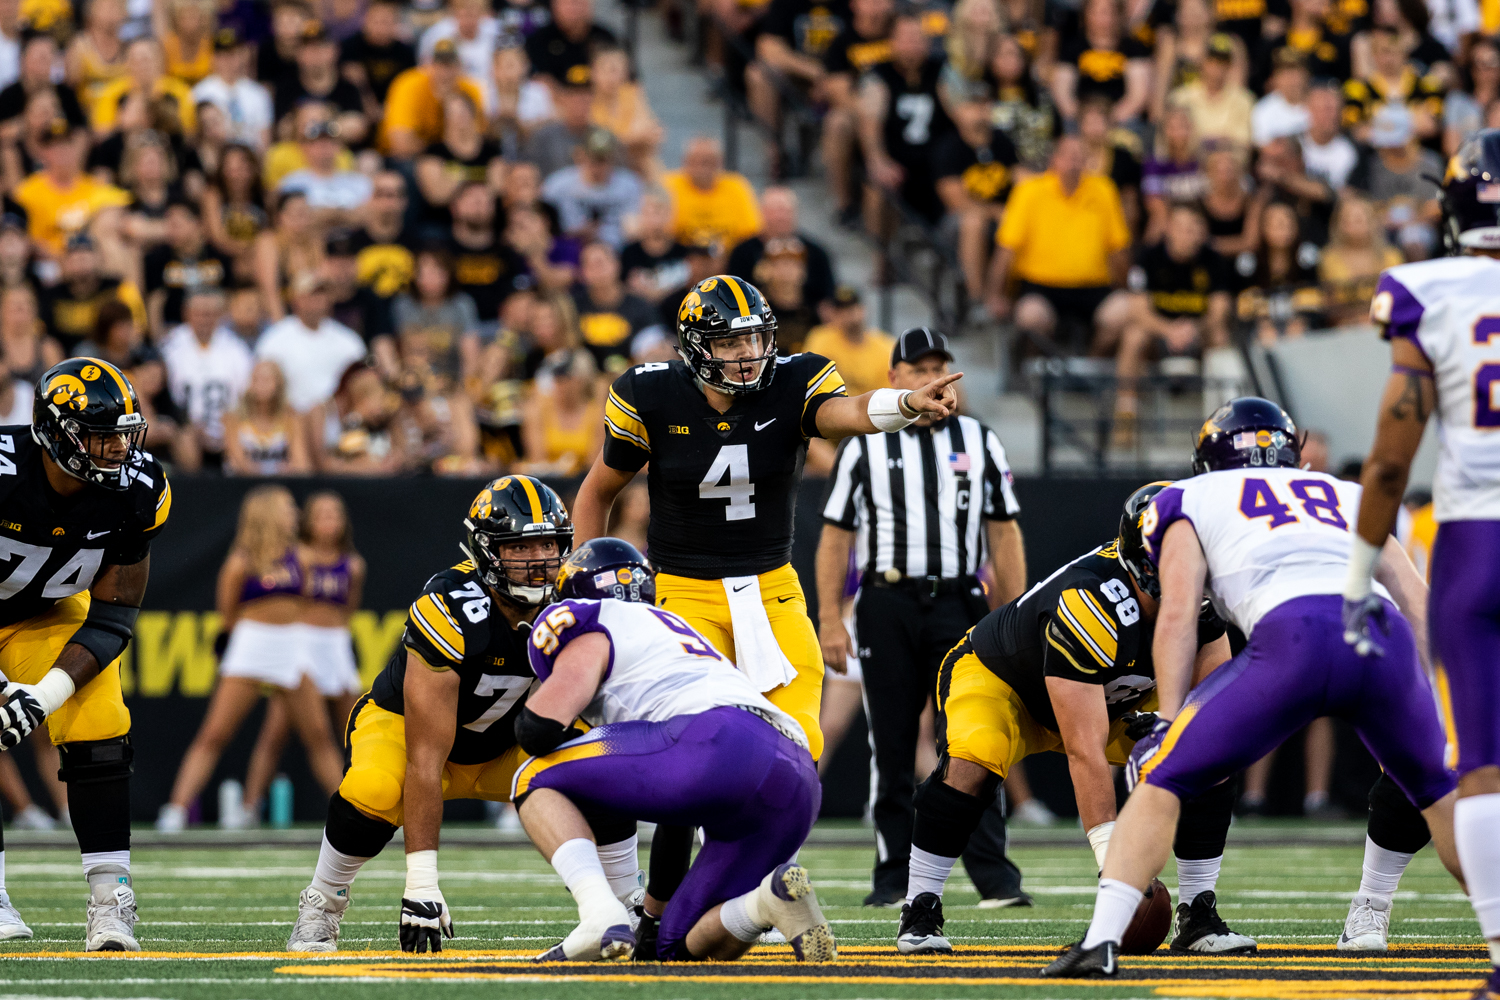 Iowa Hawkeyes quarterback Nate Stanley (4) calls out signals to his offense during a game against Northern Iowa at Kinnick Stadium on Saturday, Sep. 15, 2018. The Hawkeyes defeated the Panthers 38–14. (David Harmantas/The Daily Iowan)